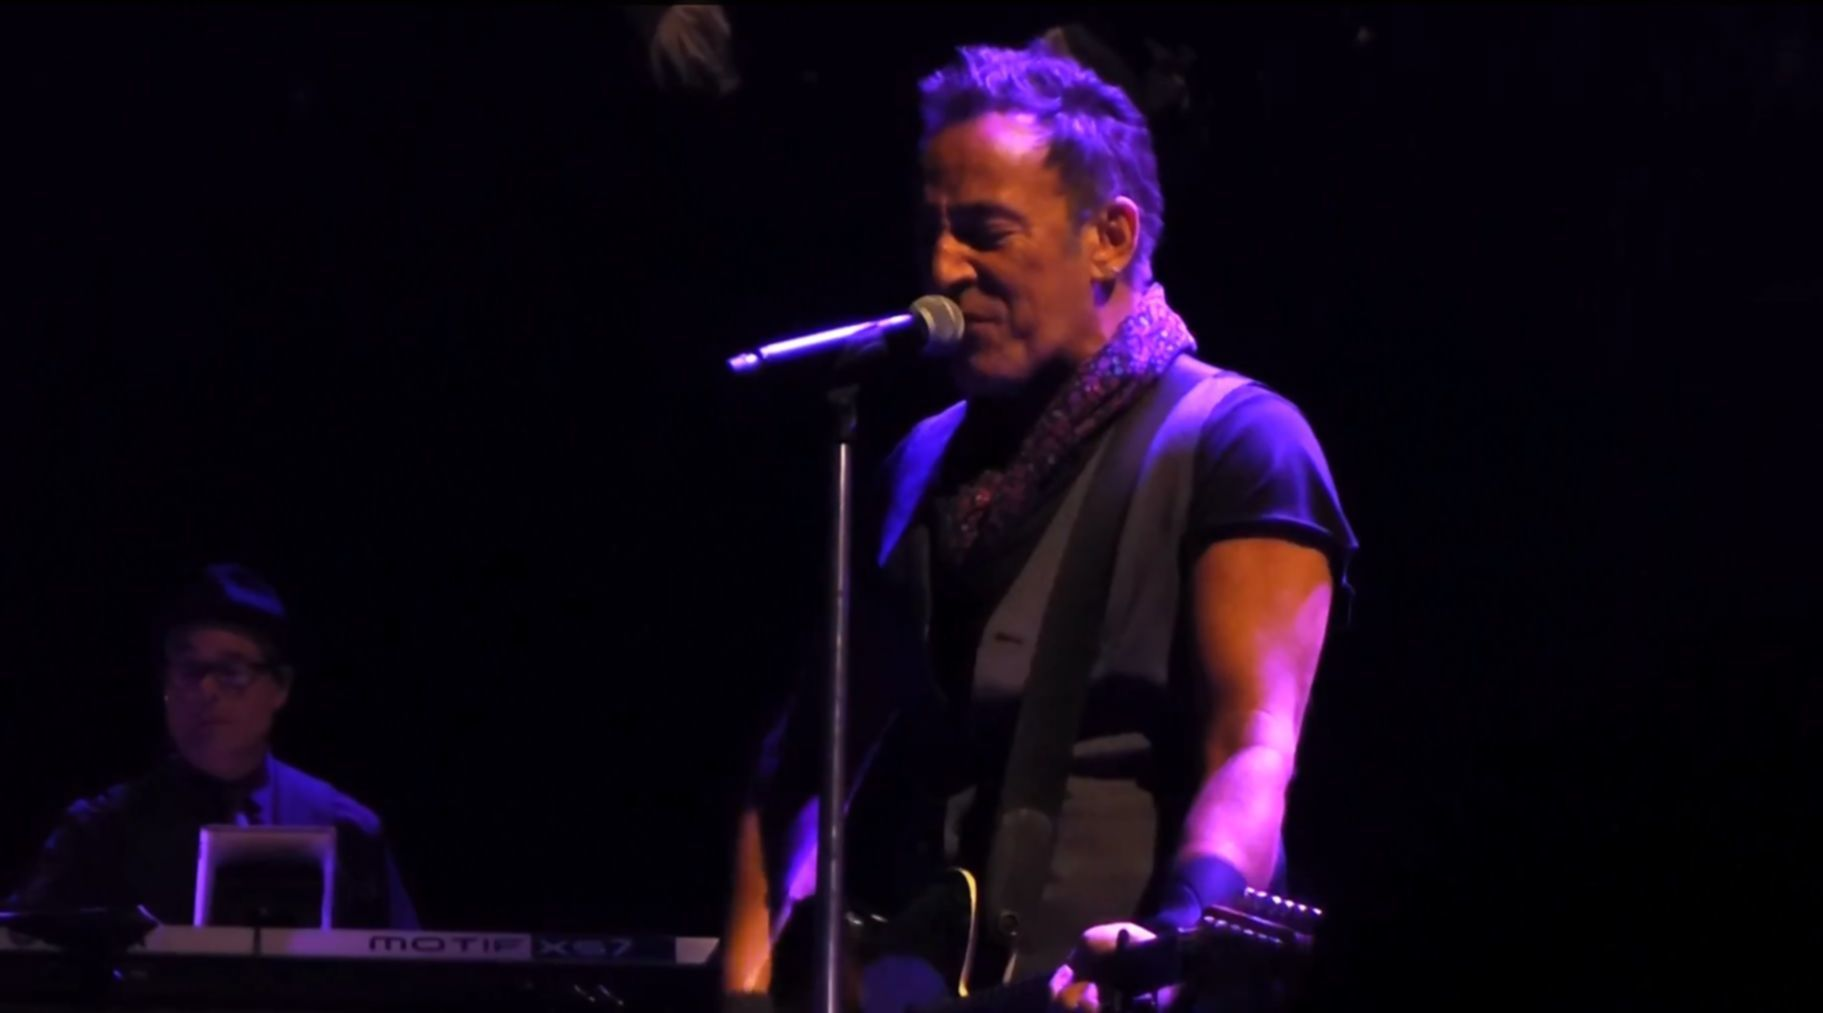 Bruce Springsteen The River Tour  Songs